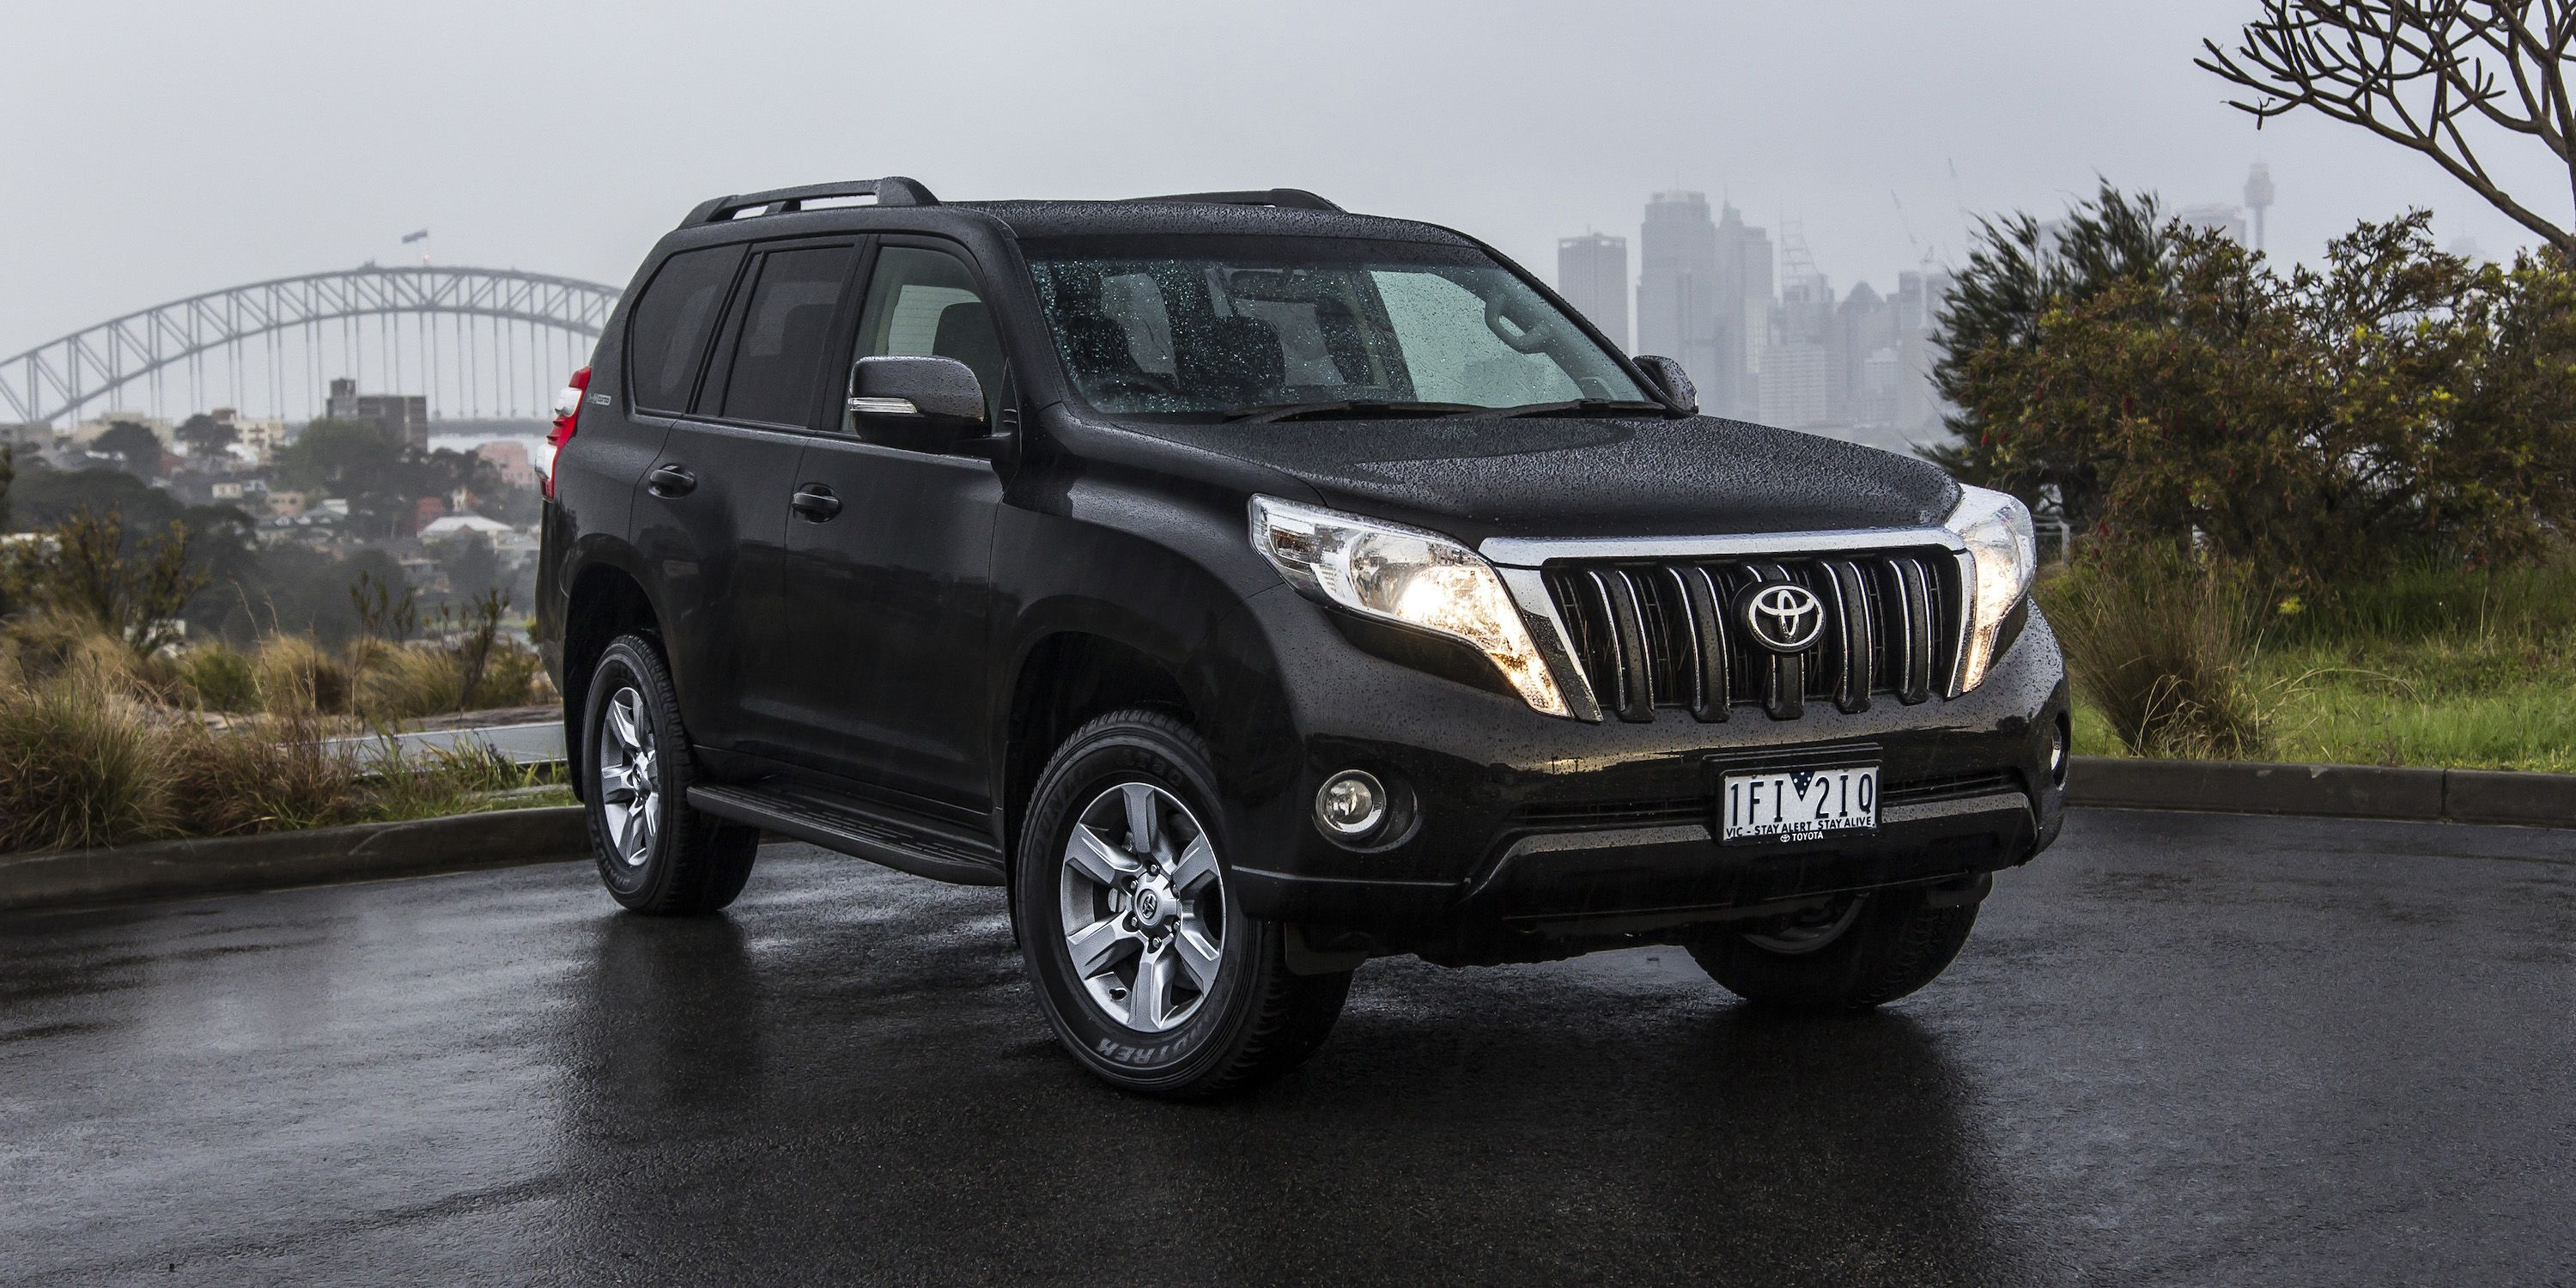 2016 toyota land cruiser prado gxl diesel manual review